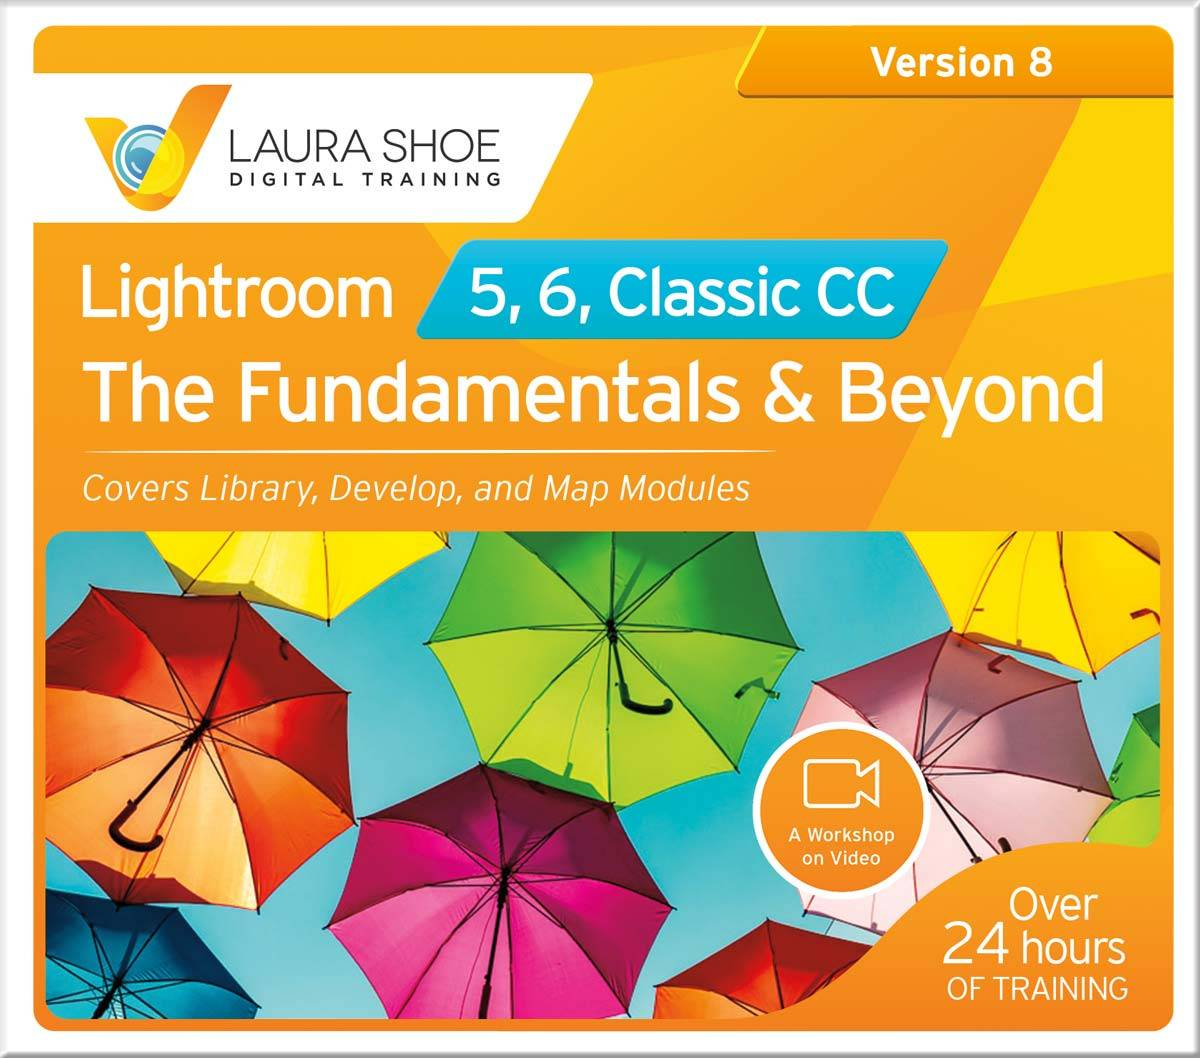 Learn Lightroom with Laura Shoe